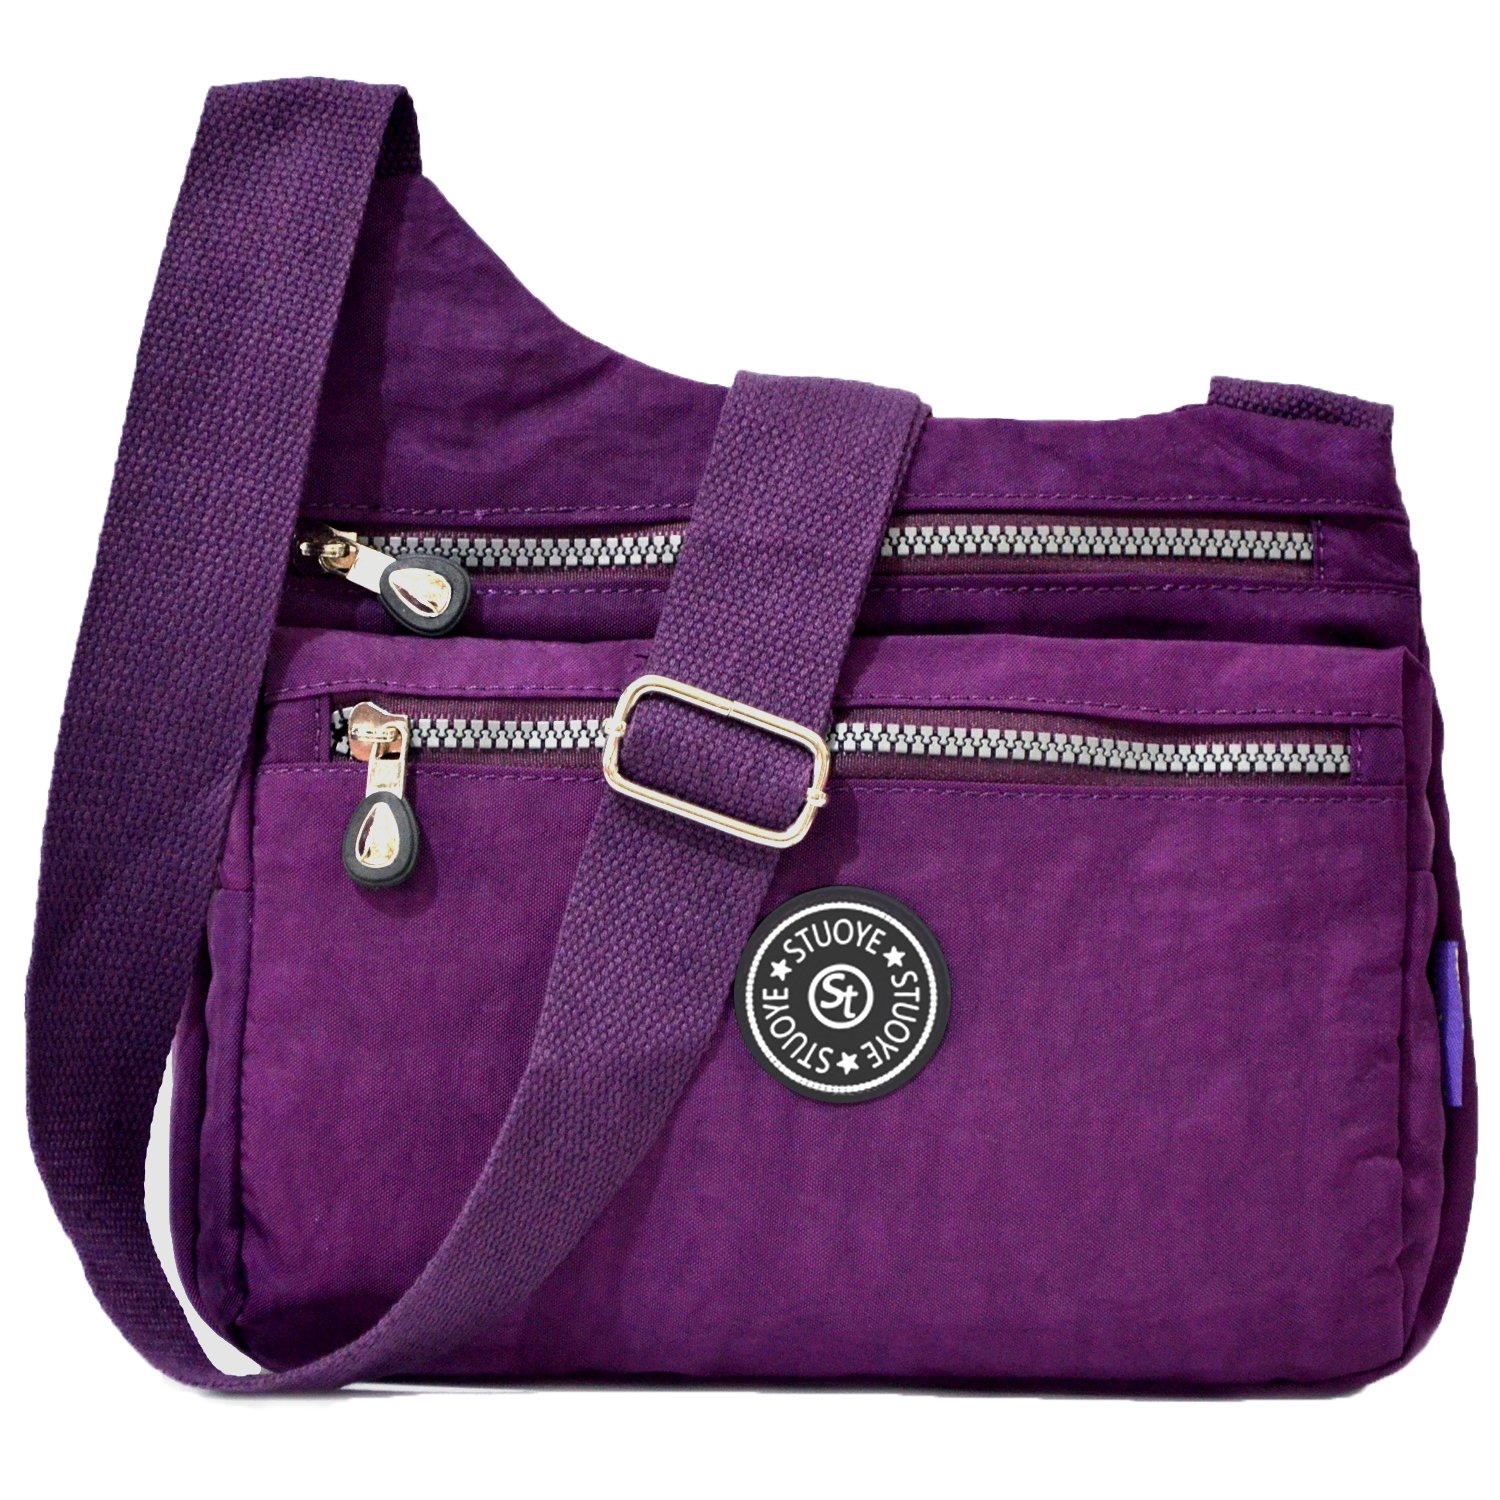 STUOYE Nylon Multi-Pocket Crossbody Purse Bags for Women Travel Shoulder Bag (Z187 Purple)